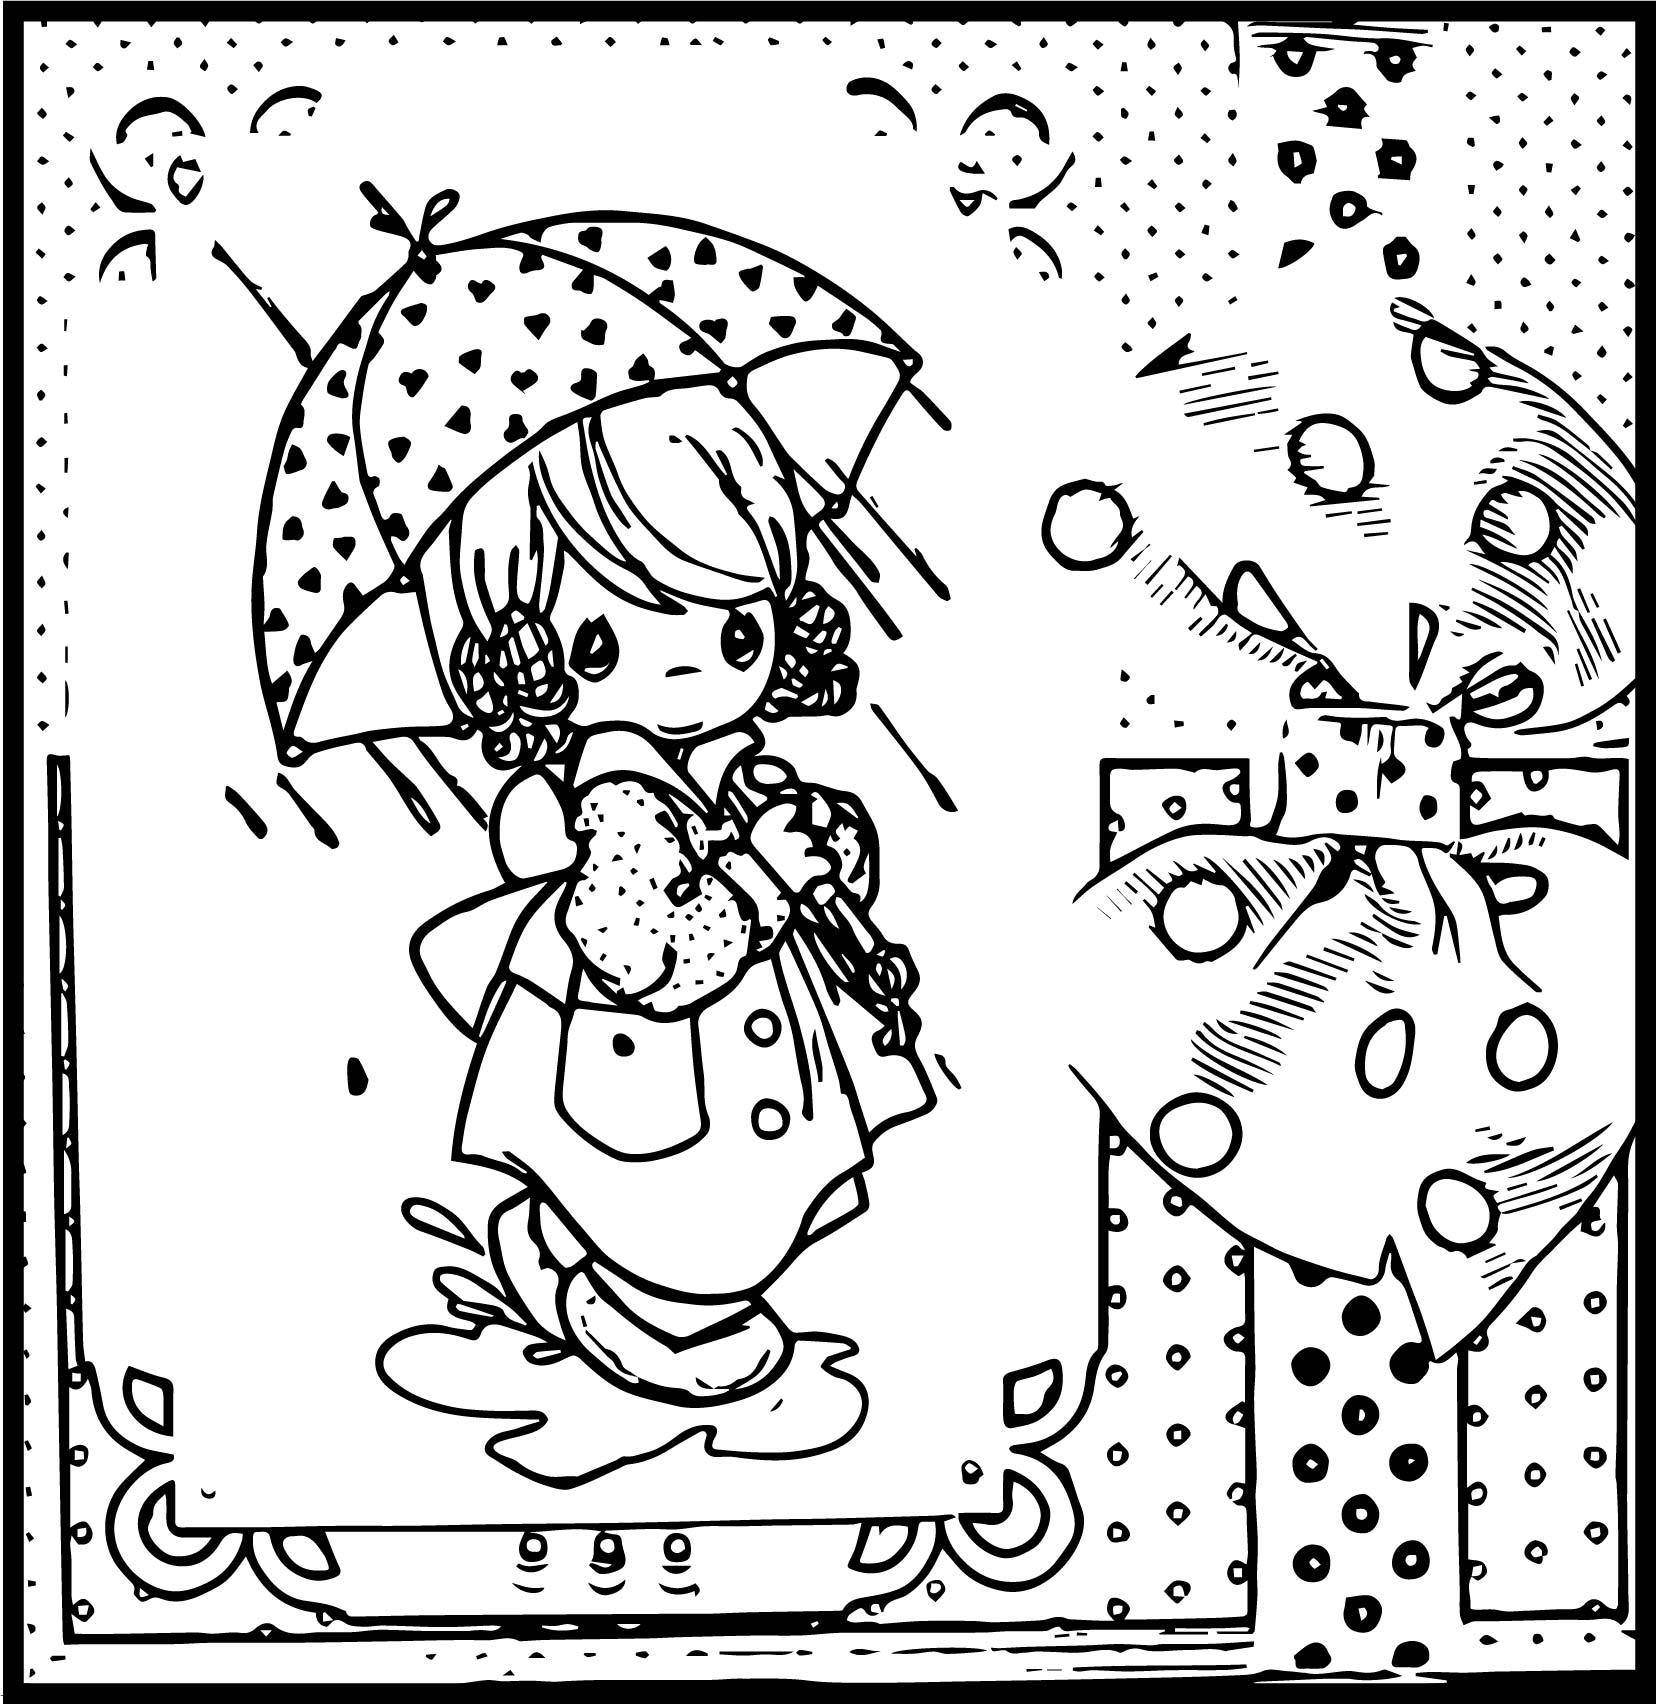 old cartoon coloring pages coloring looney pages show tunes 2020 with images cartoon old coloring pages